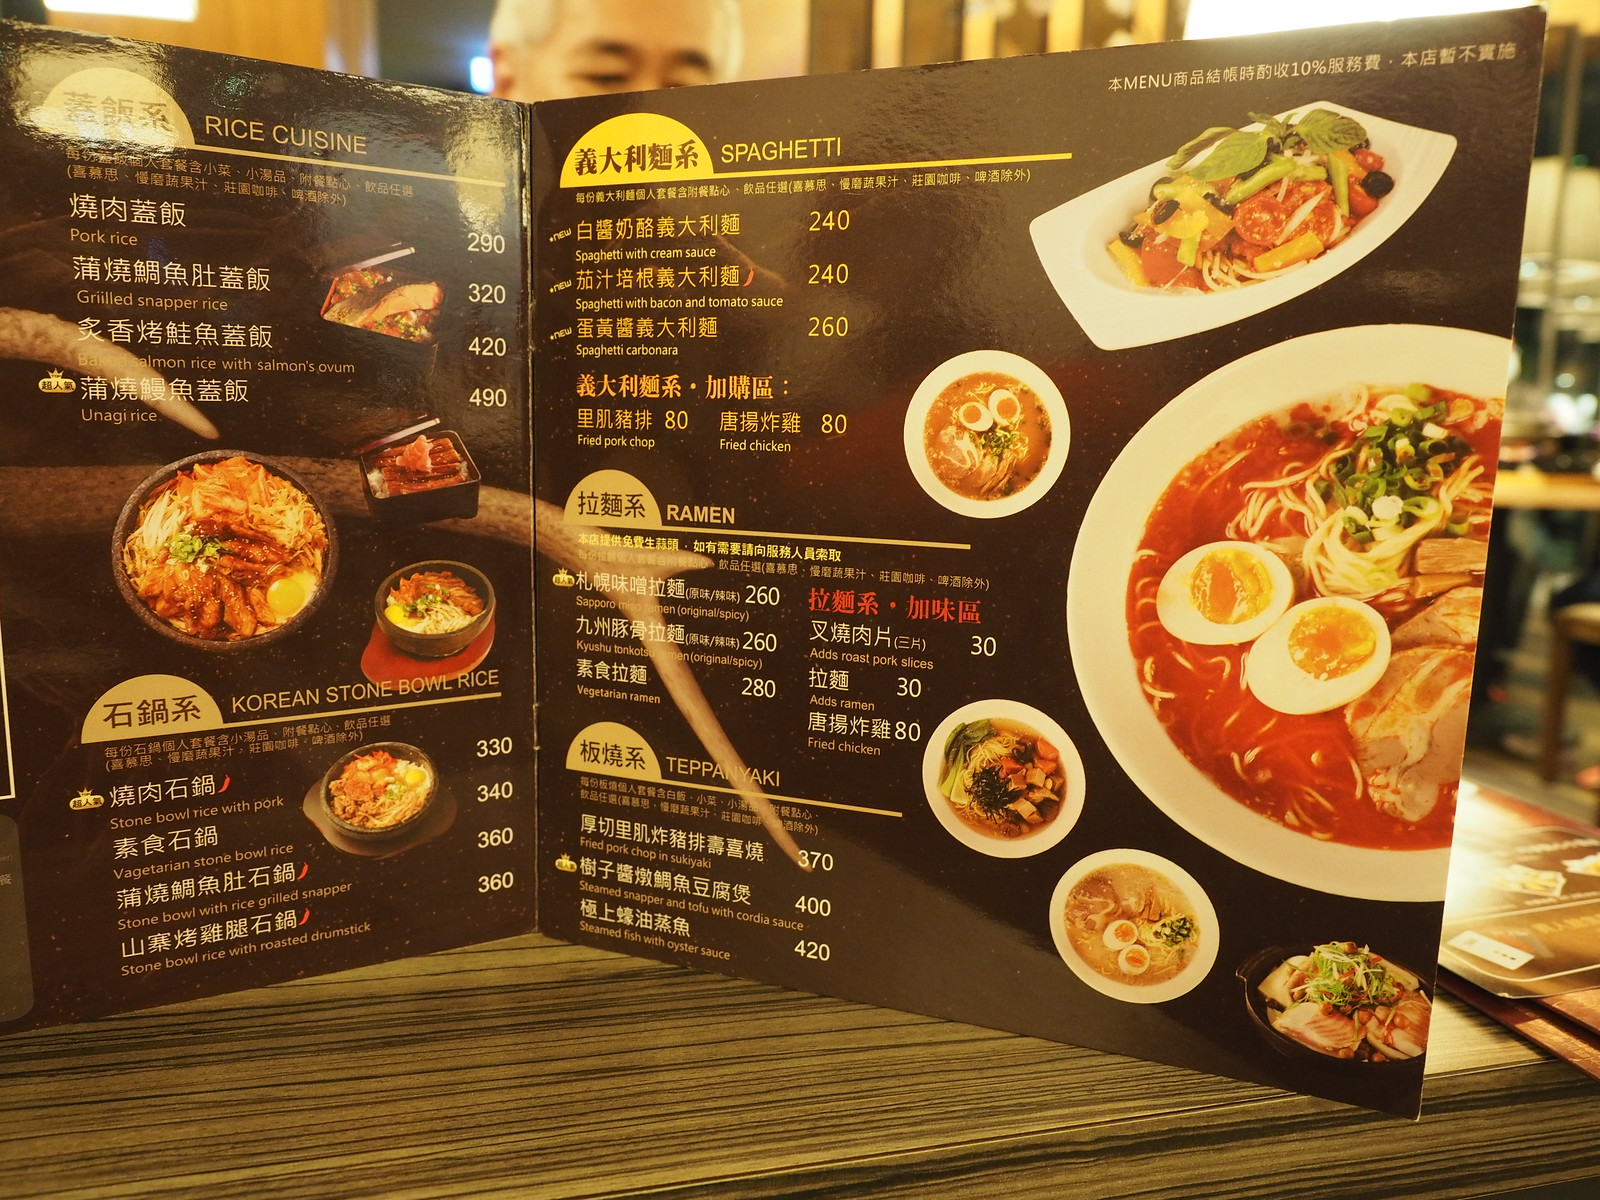 Rice and noodle dishes such as ramen, stone bowl rice and spaghetti